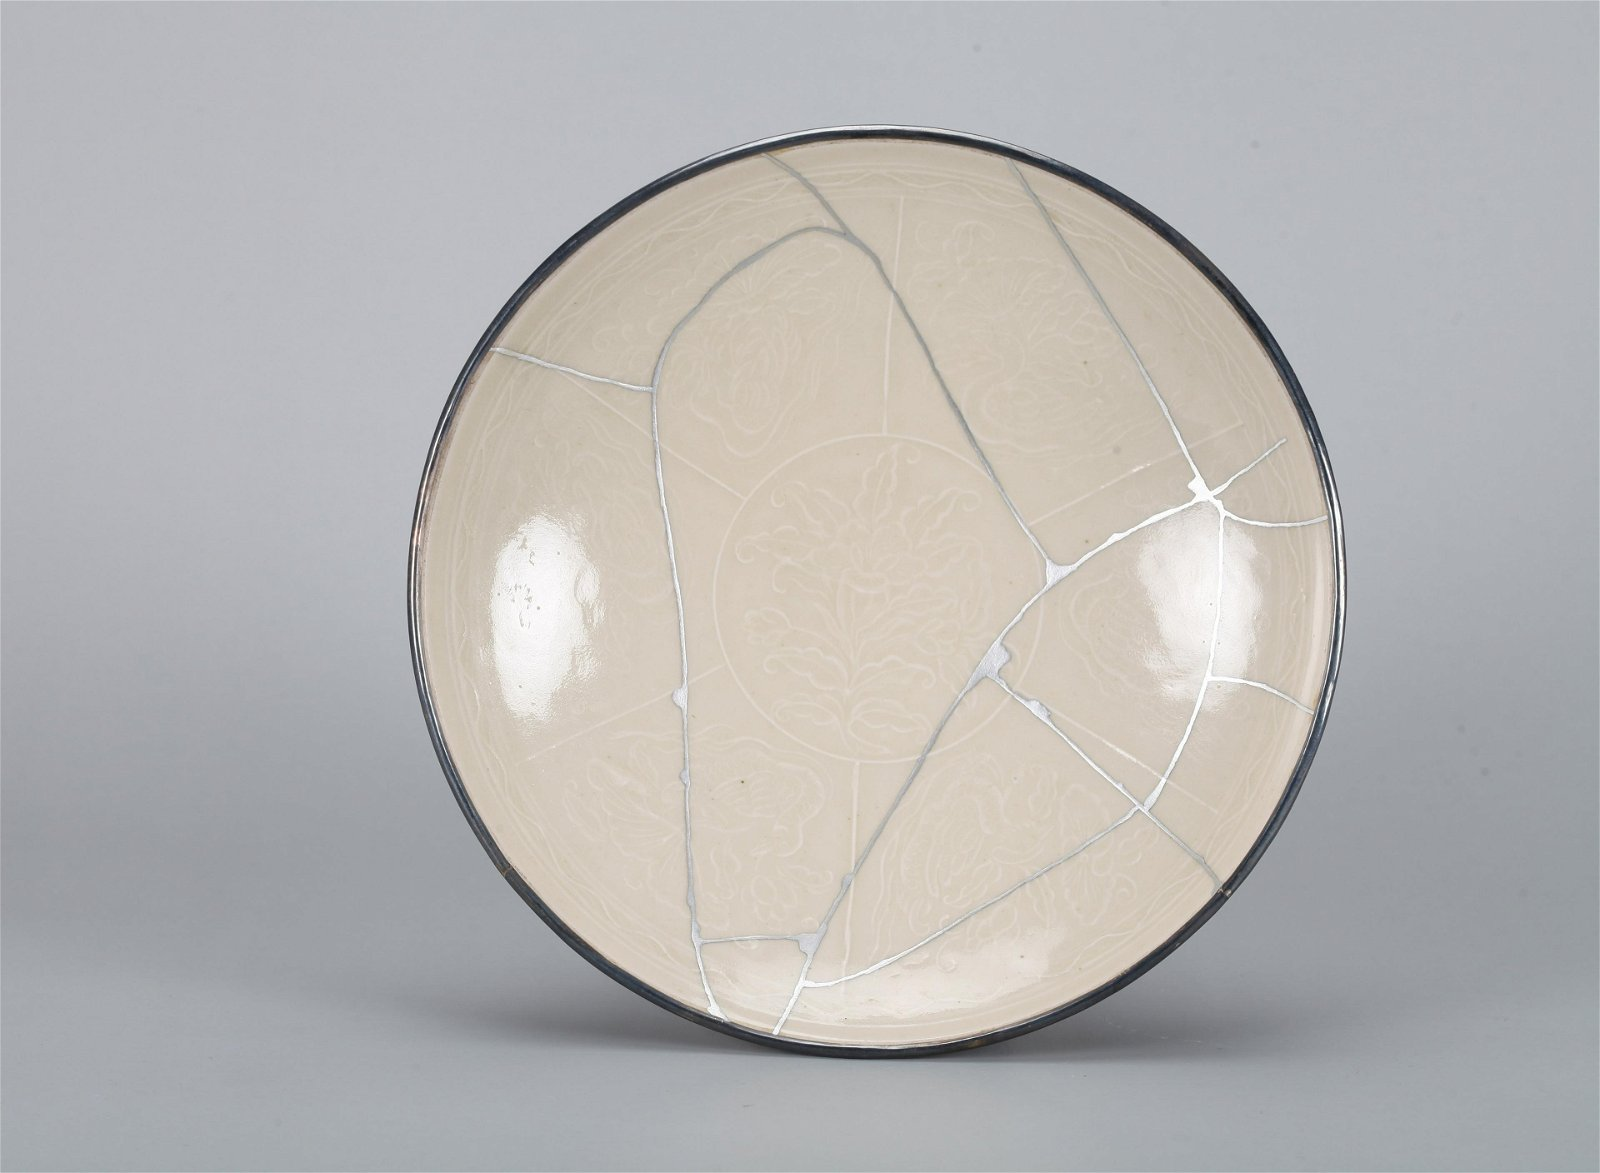 A Chinese Ding-Type Porcelain Plate